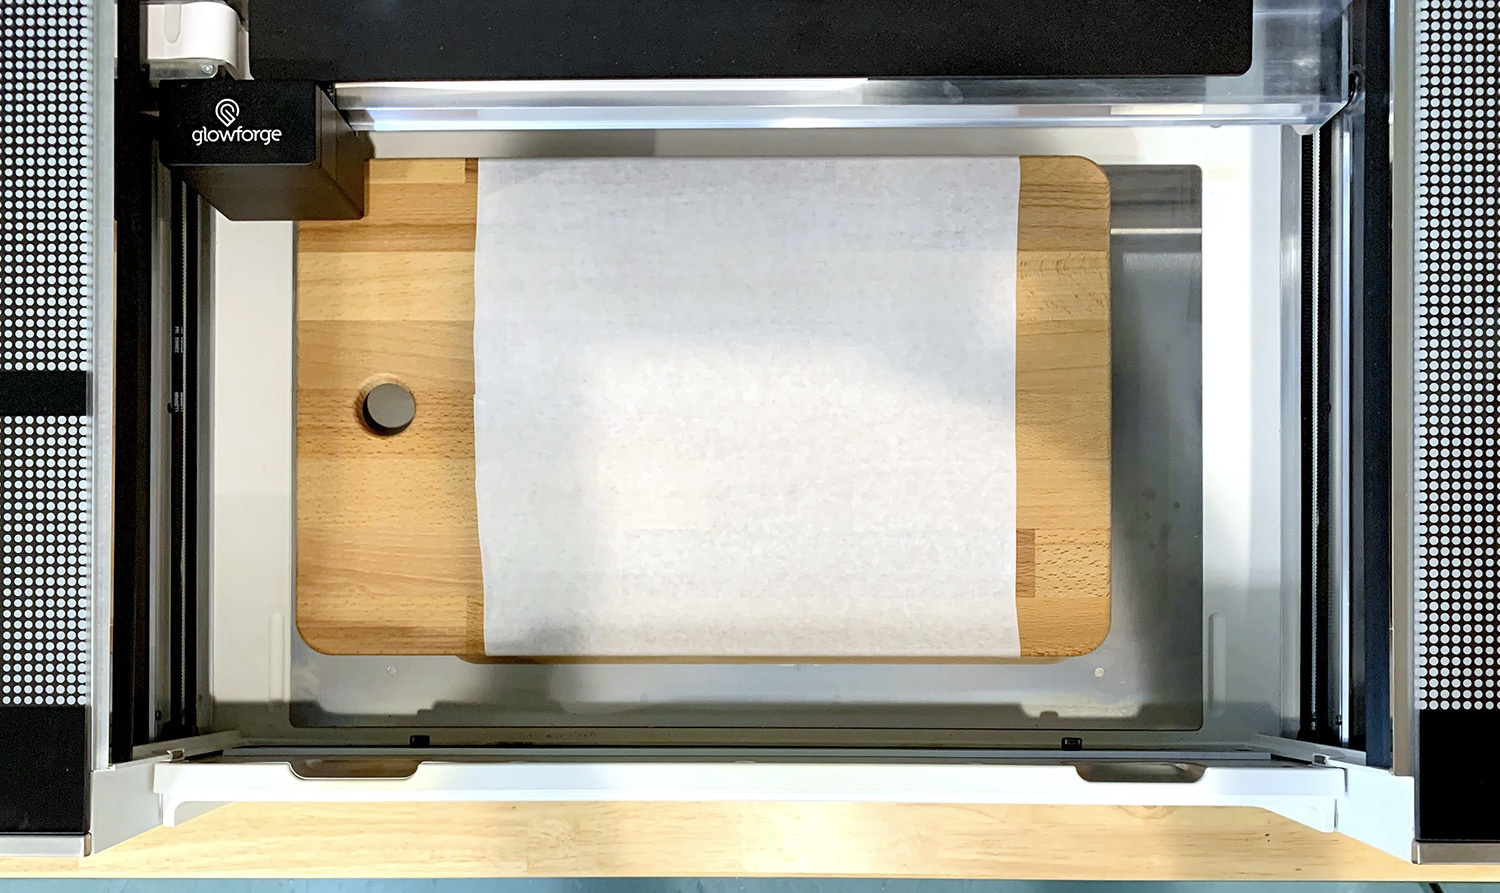 Masked cutting board inside a Glowforge Pro machine